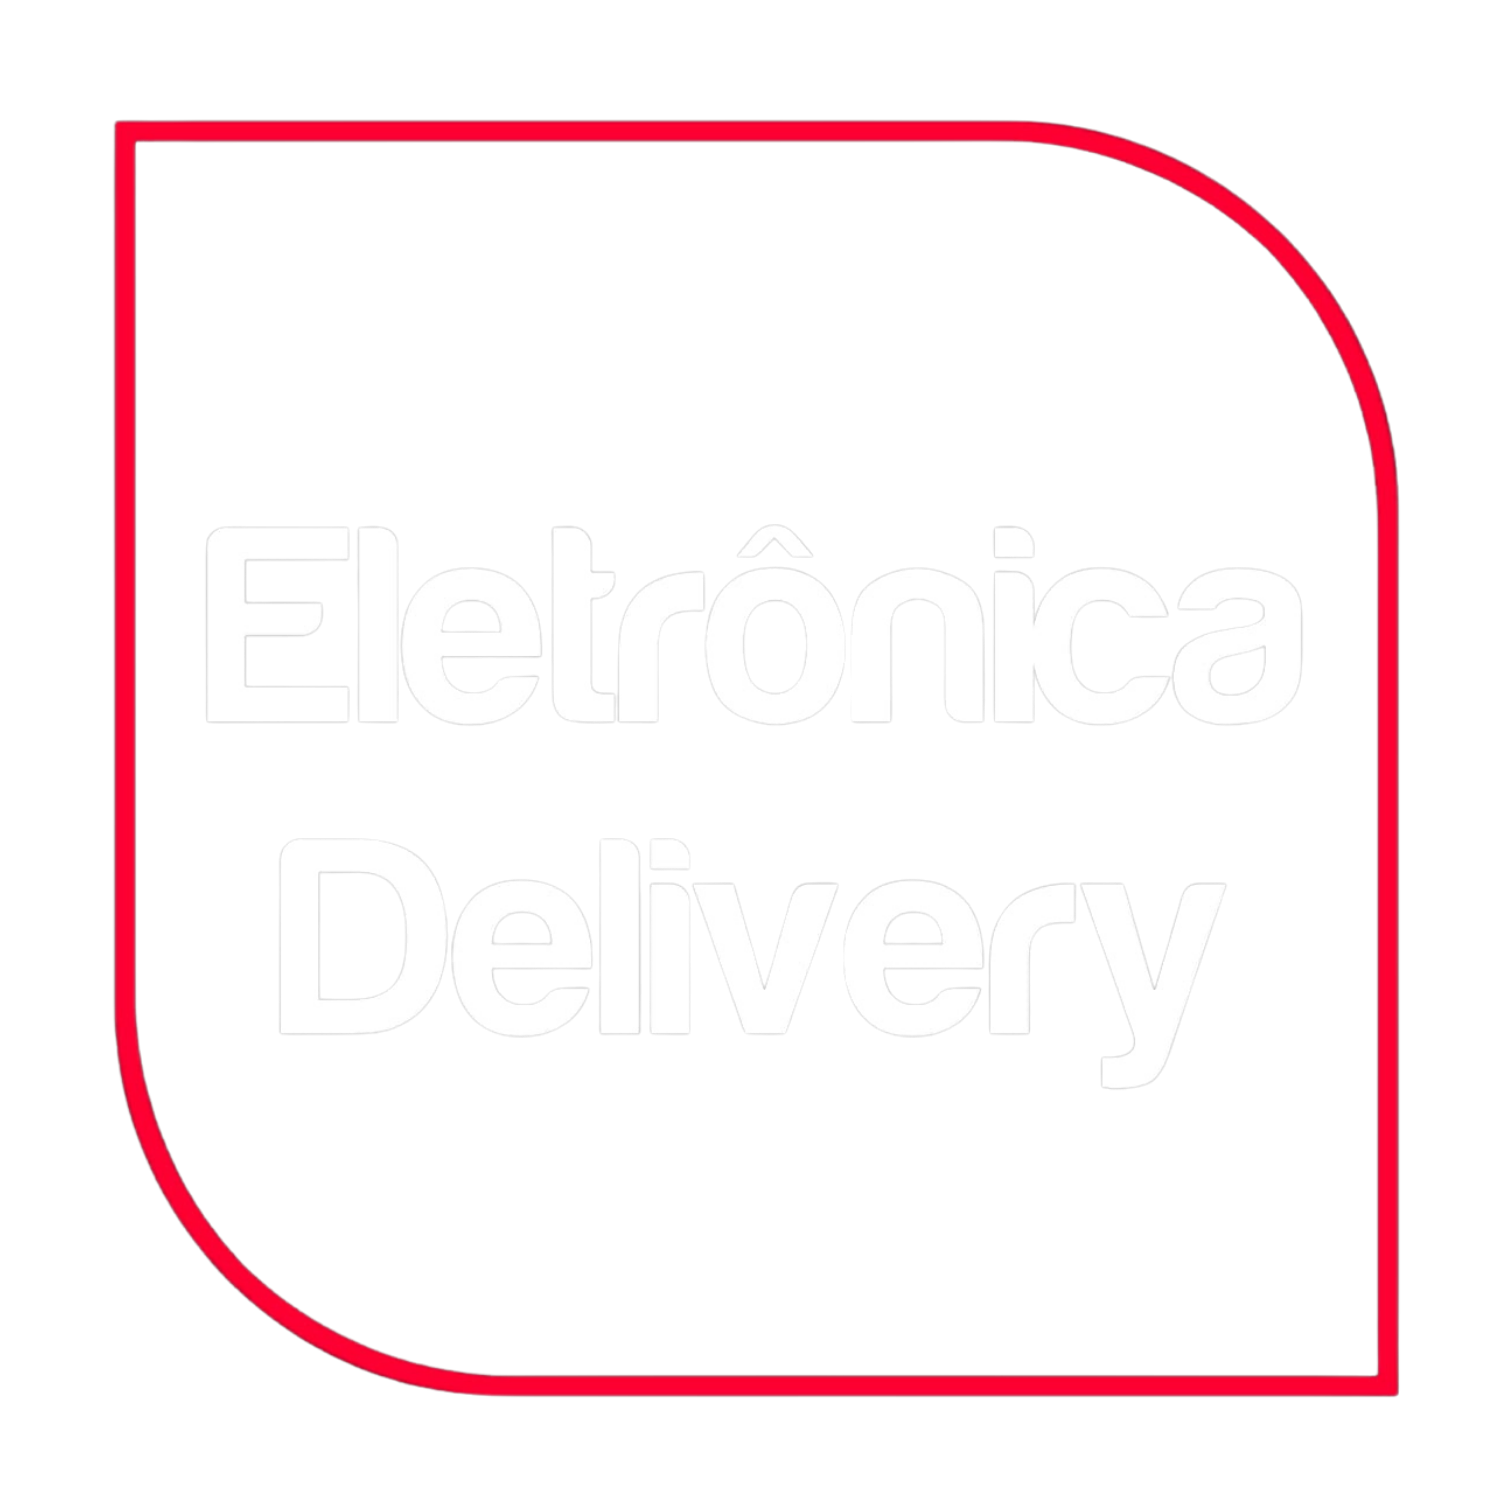 ELETRONICA DELIVERY